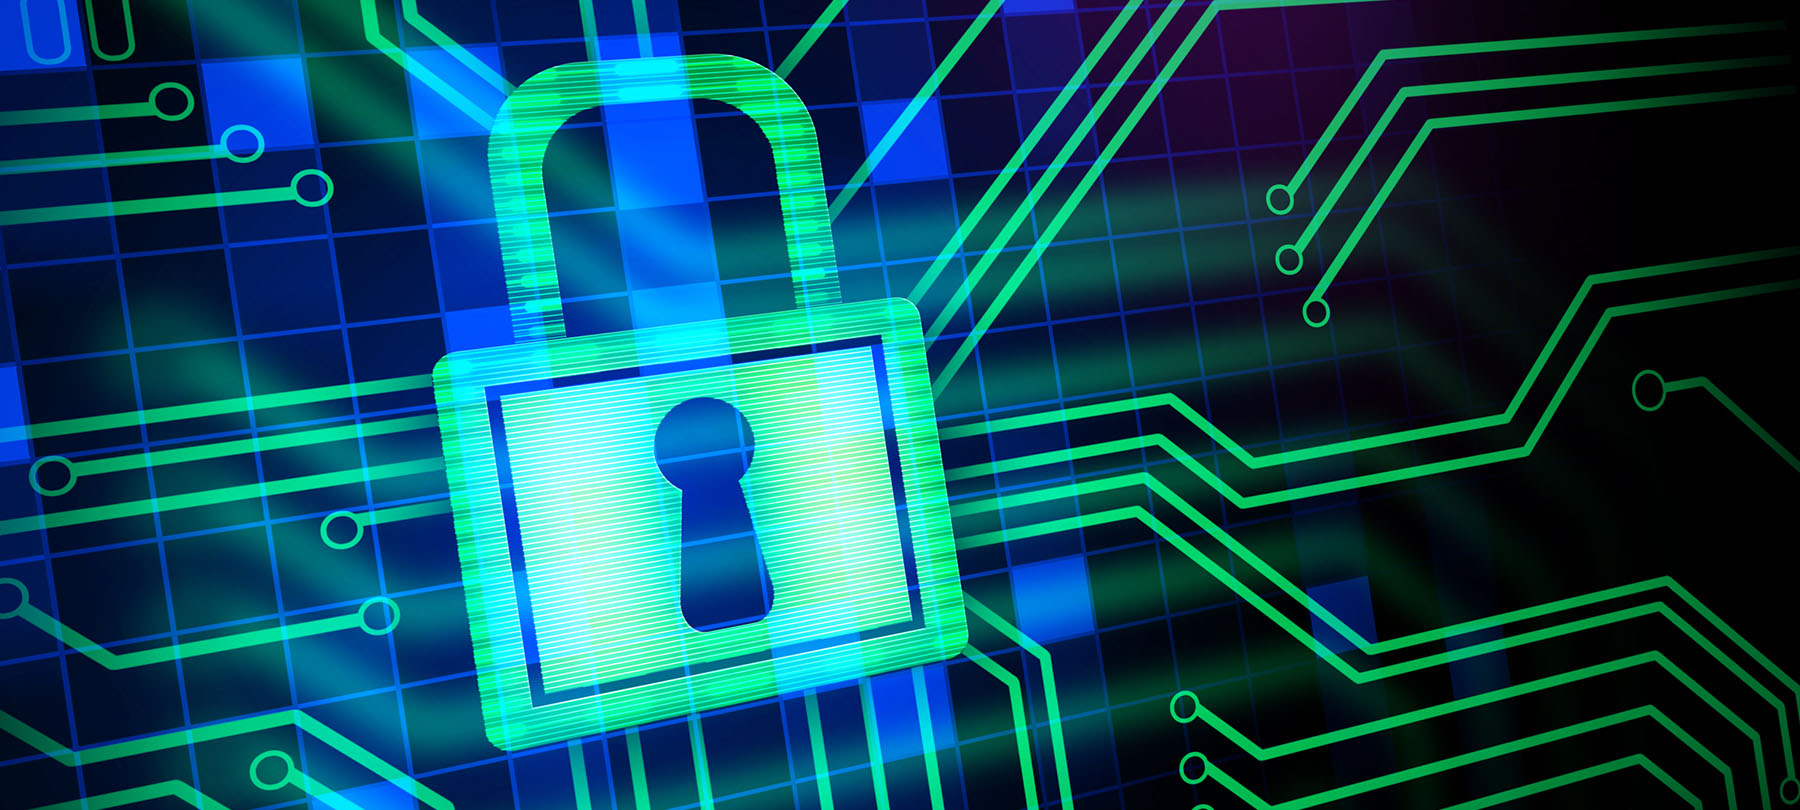 5 Security Tips for File Sharing